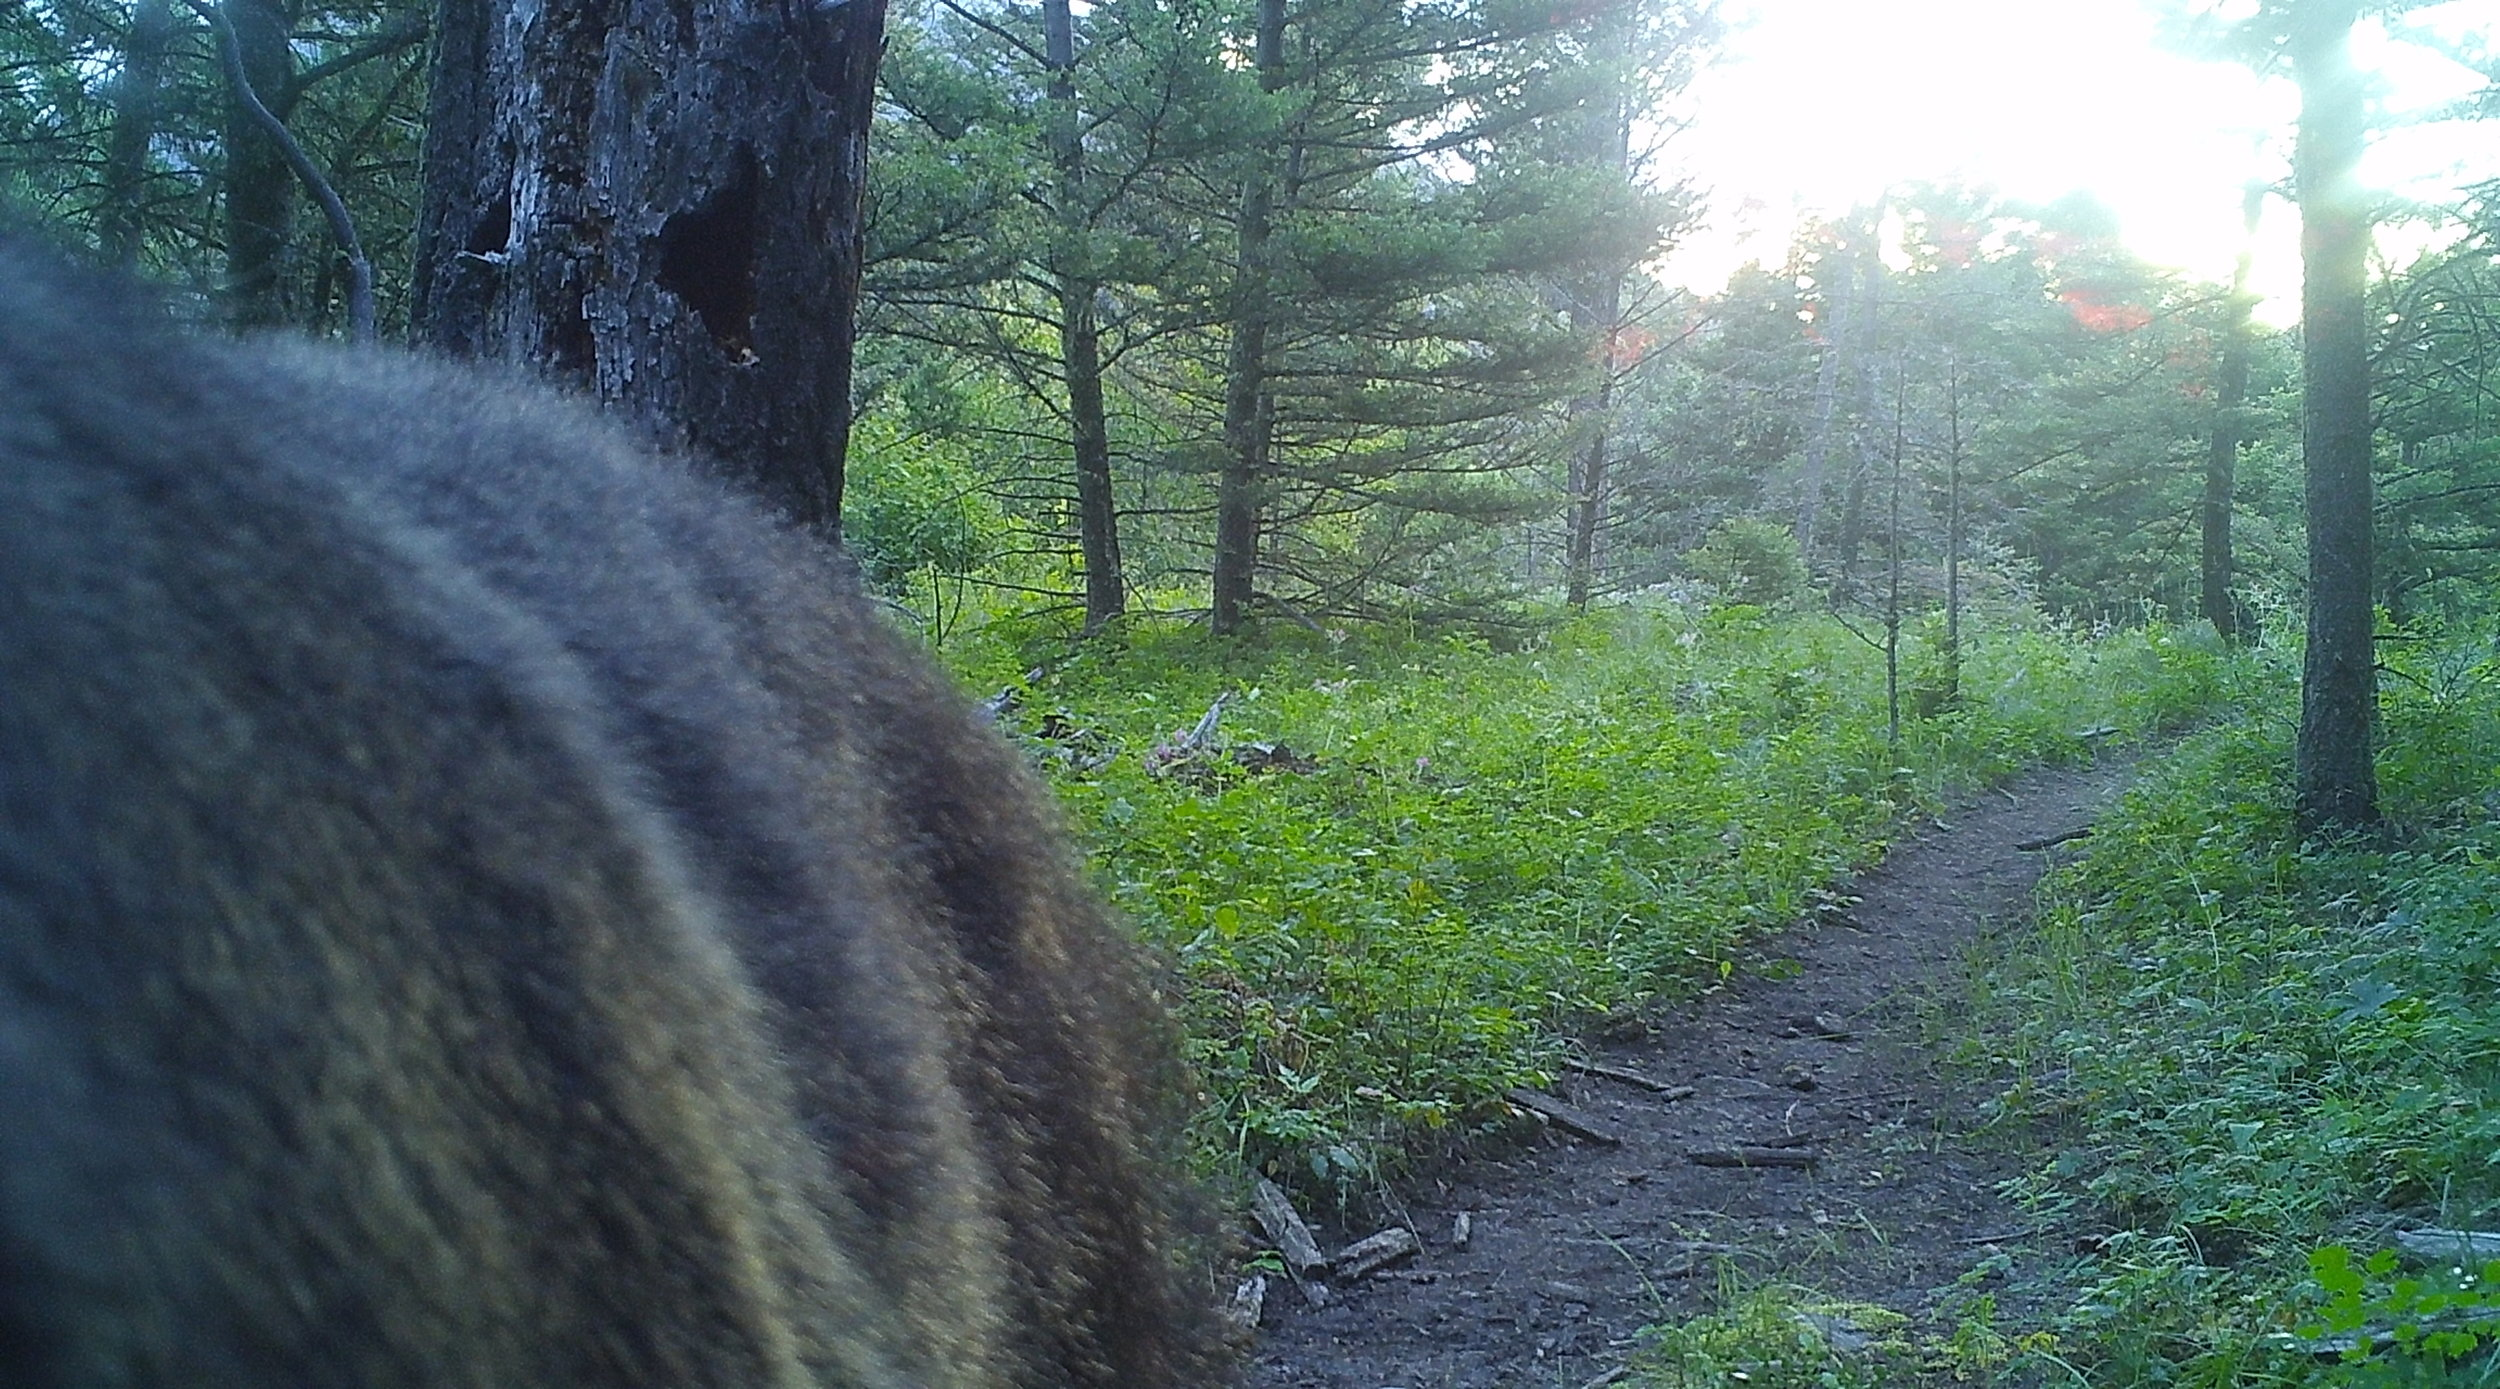 The trail camera's original position when it what discovered by the curious bear